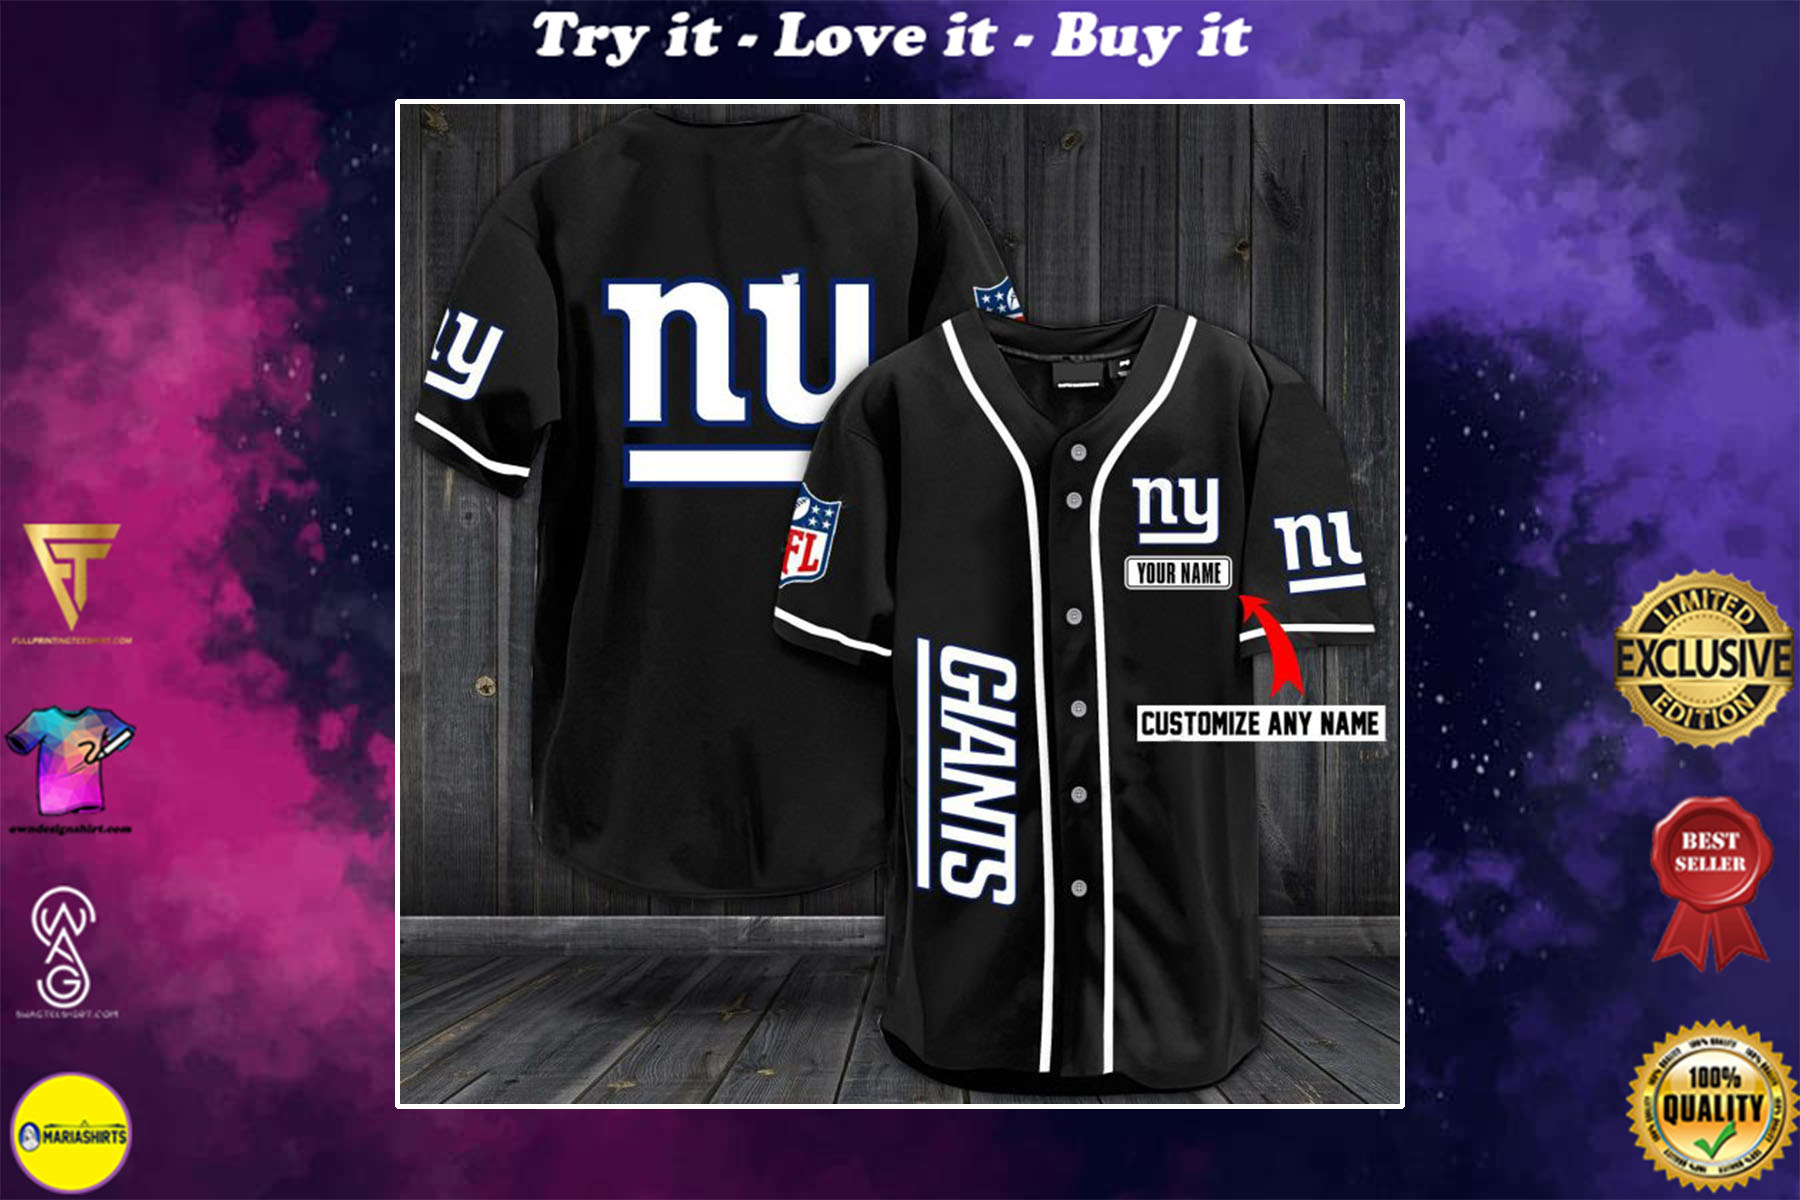 [special edition] custom name jersey new york giants shirt - maria